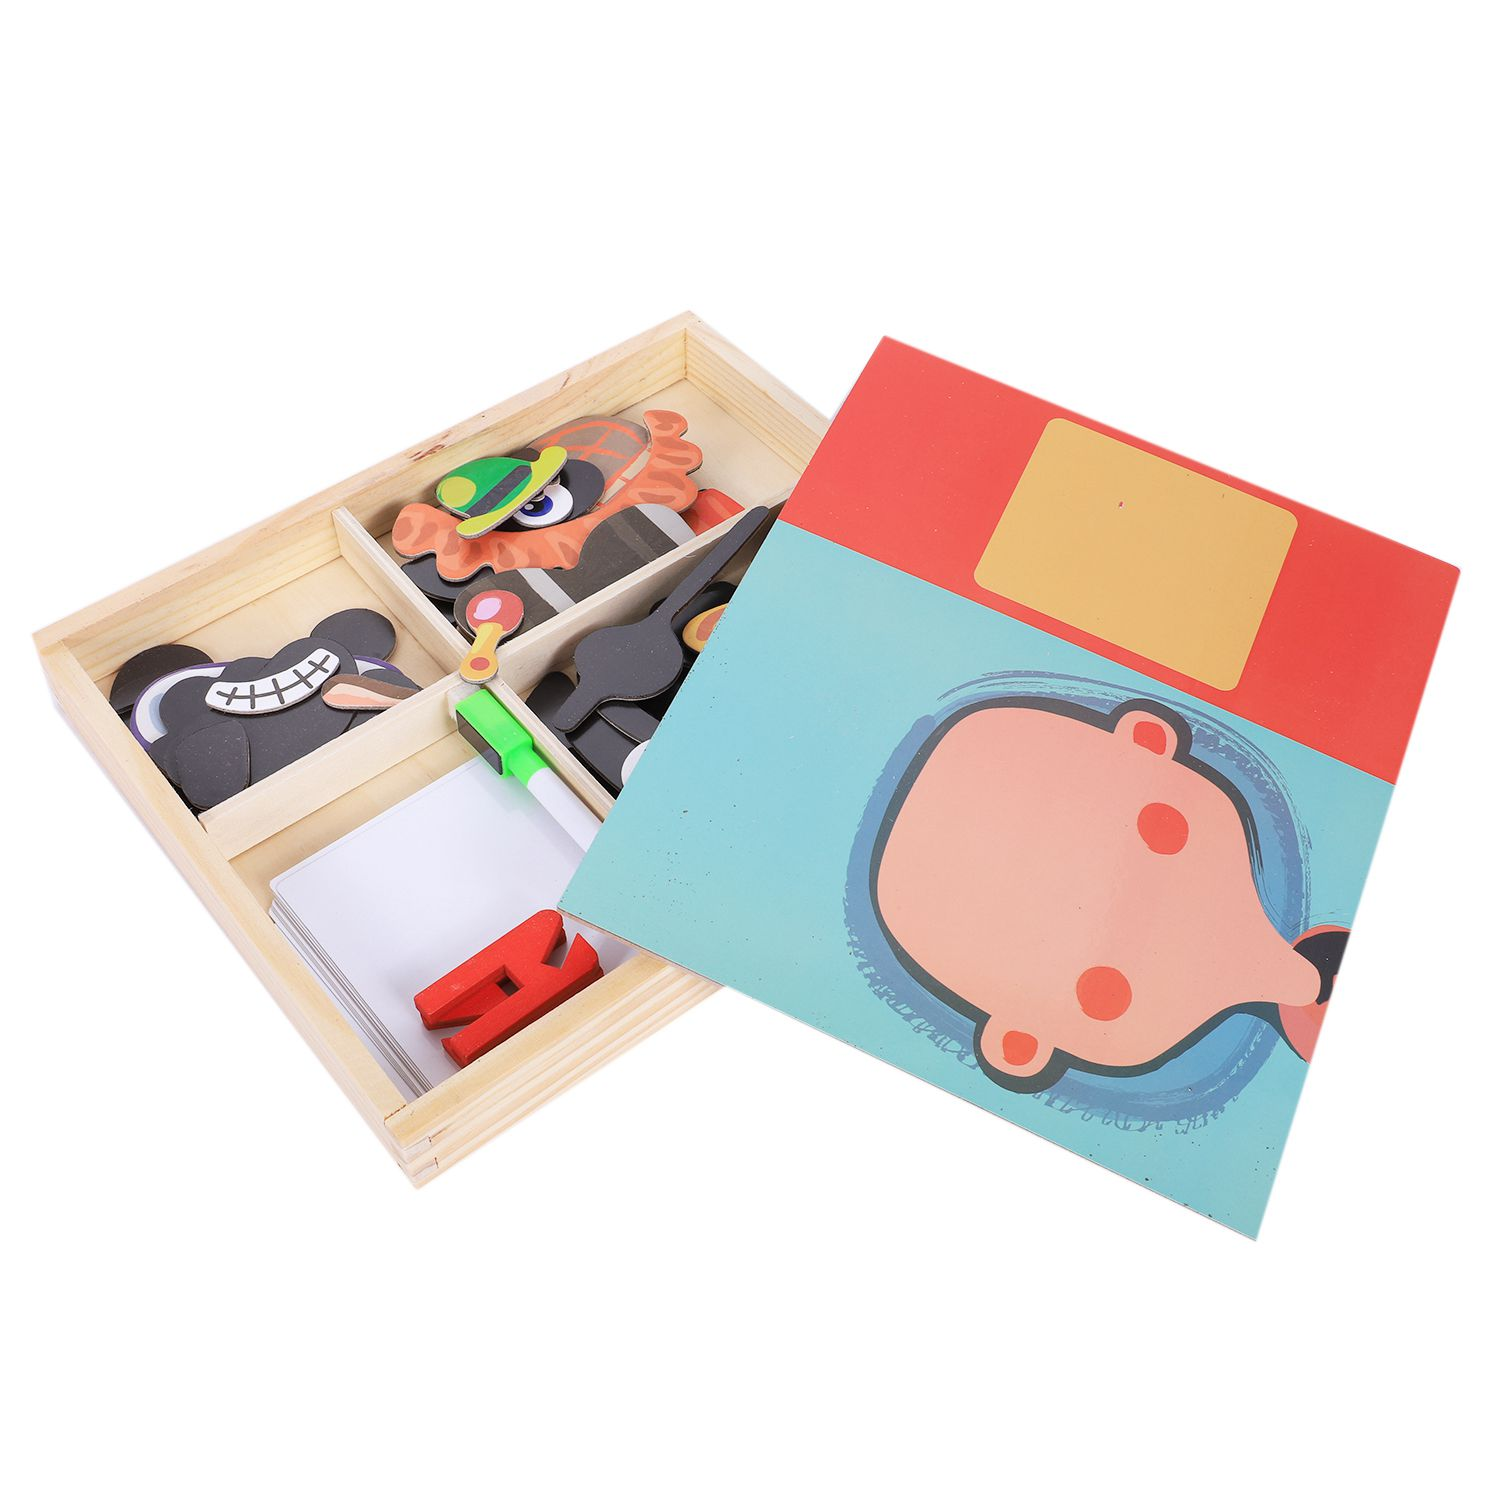 MWZ Magnetic Fun Jigsaw Children Wooden Puzzle Board Box Pieces Games Cartoon Educational Drawing Baby Toys For Girls Boys, Pe